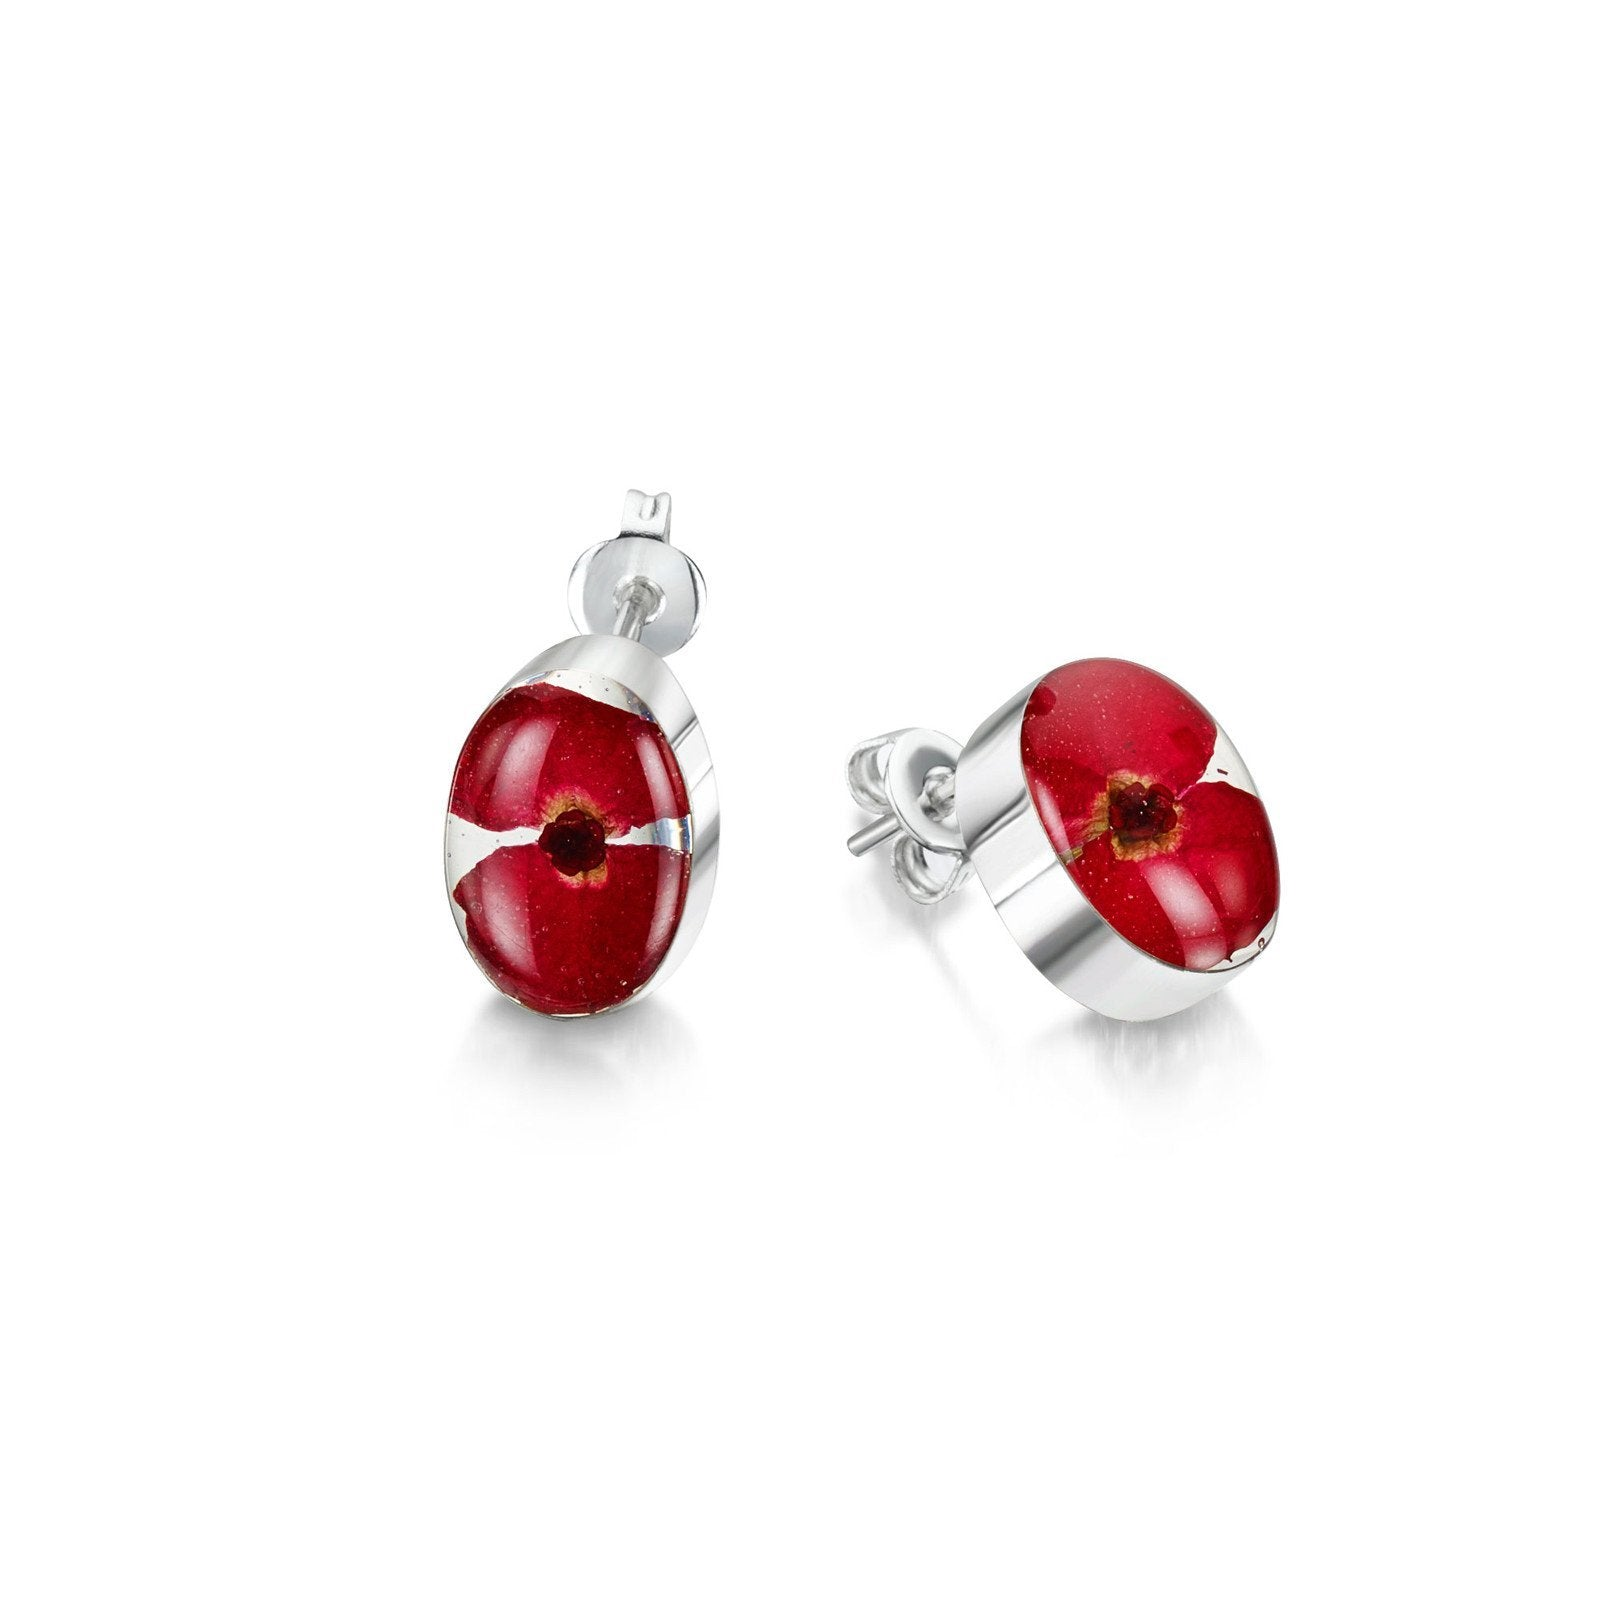 Sterling Silver Oval Stud Earrings Made With Real Poppies 6a3oSwr9